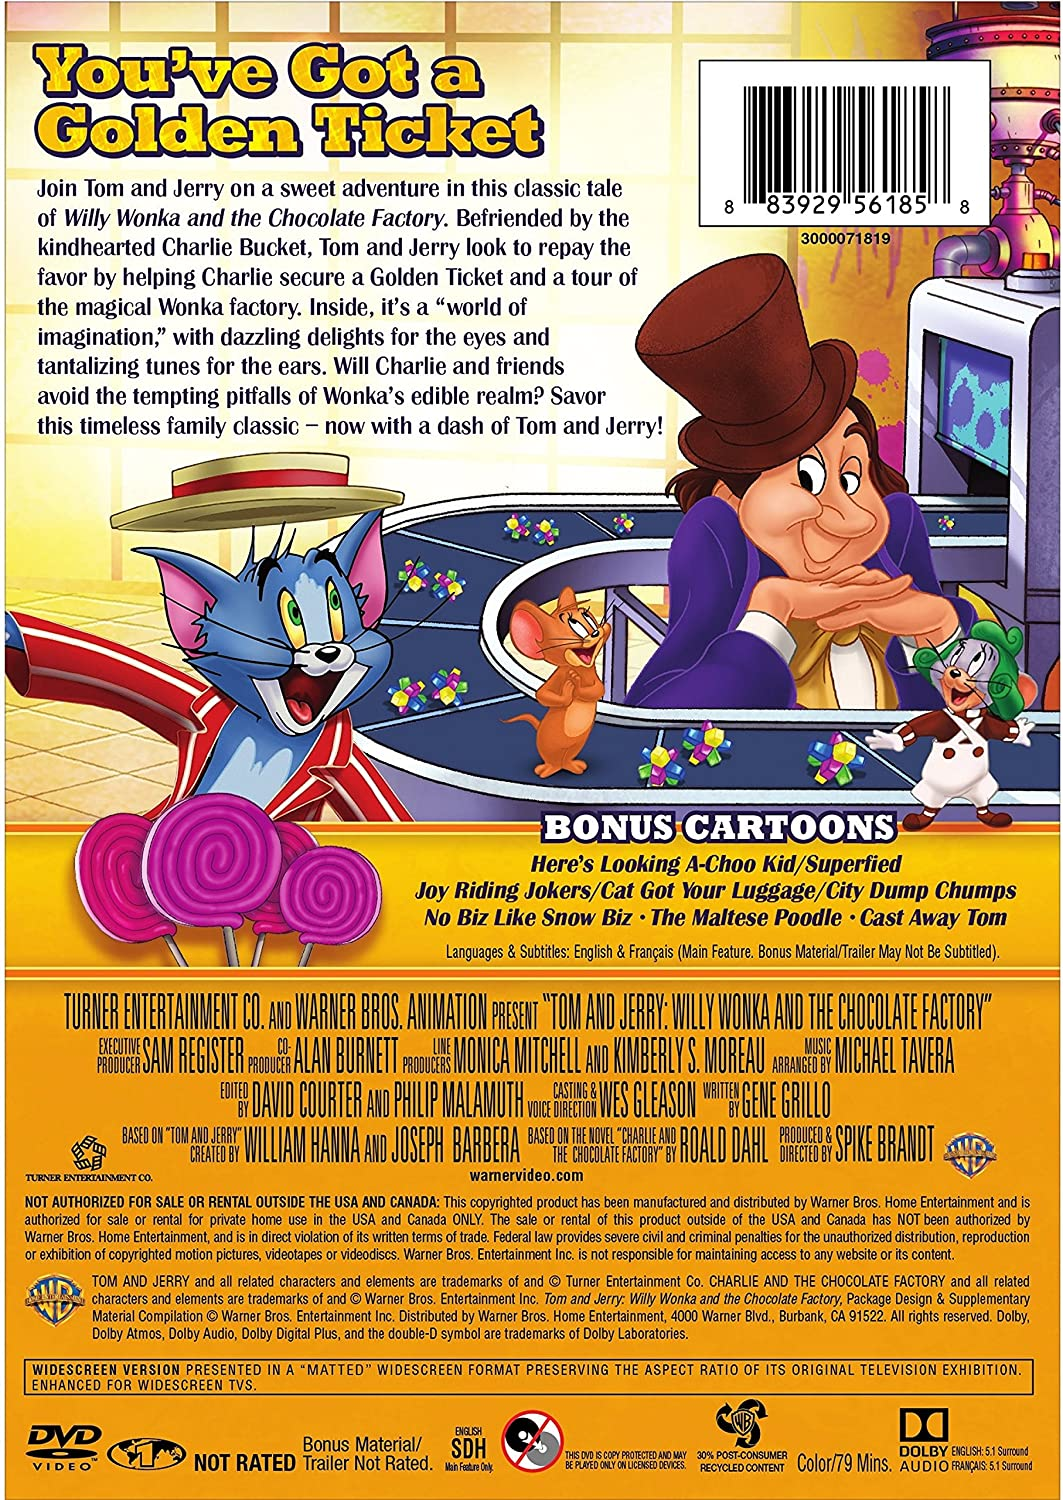 Amazon.com: Tom and Jerry: Willy Wonka and the Chocolate Factory ...